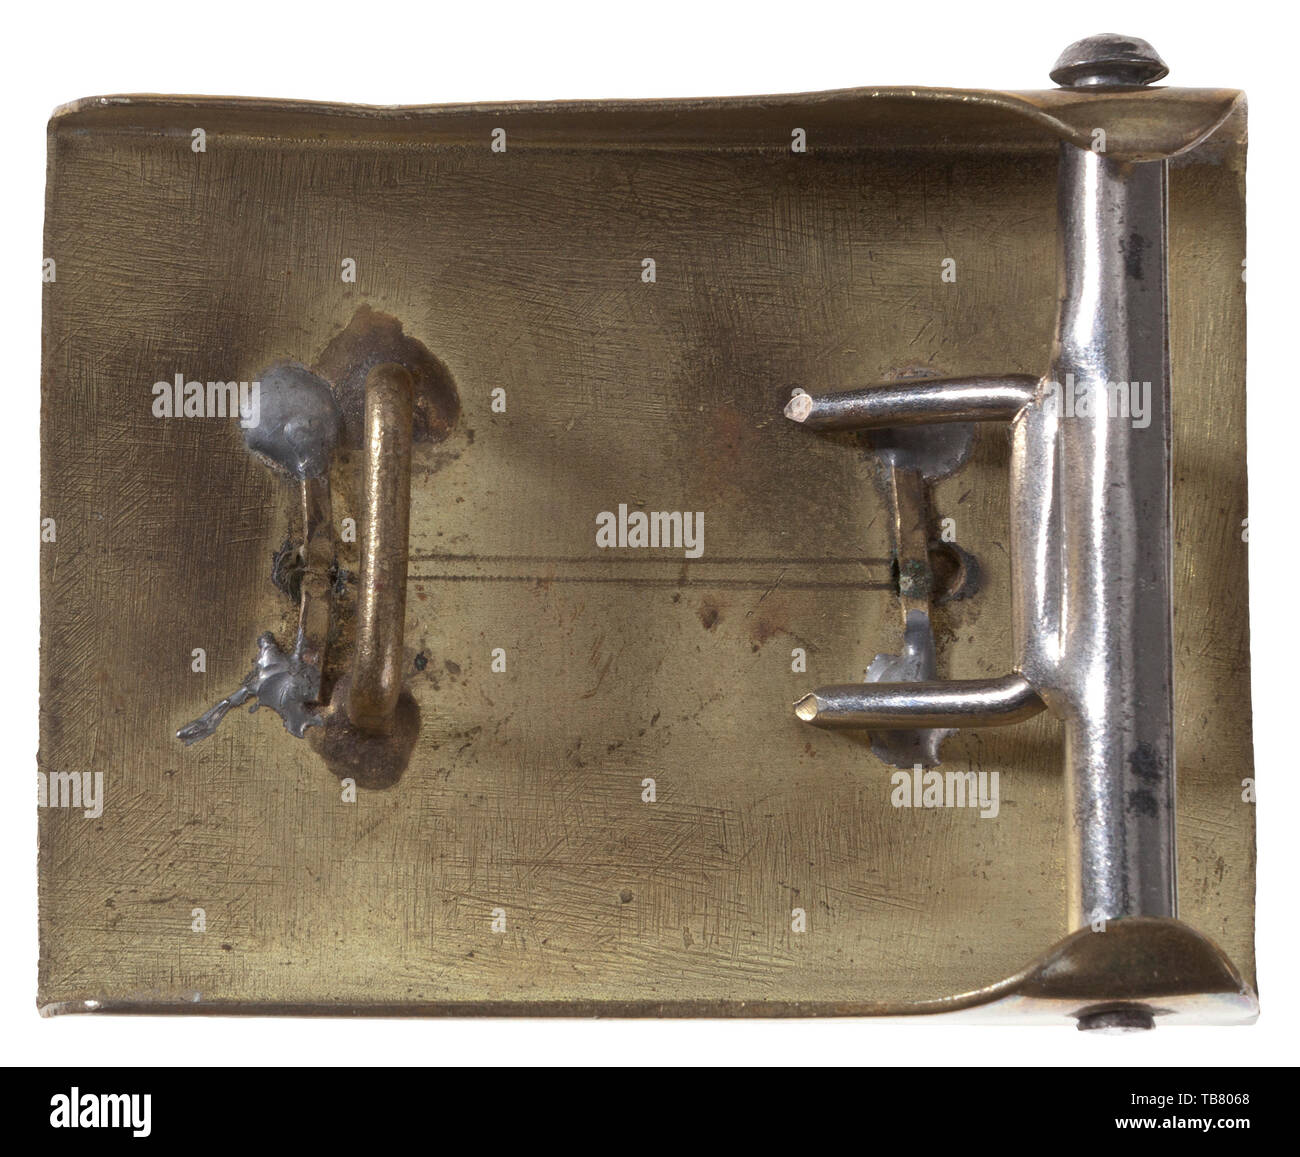 THE JOHN WAHL BELT AND BUCKLE COLLECTION, An unattributed Belt Buckle, Stamped brass, smooth outer field, brass horizontal bar similar to Wolfsangel applied with four folded soldered pins. Possibly Deutsches Jungvolk related. Cf. Angolia, Belt Buckles & Brocades of the Third Reich, p. 589., Editorial-Use-Only - Stock Image